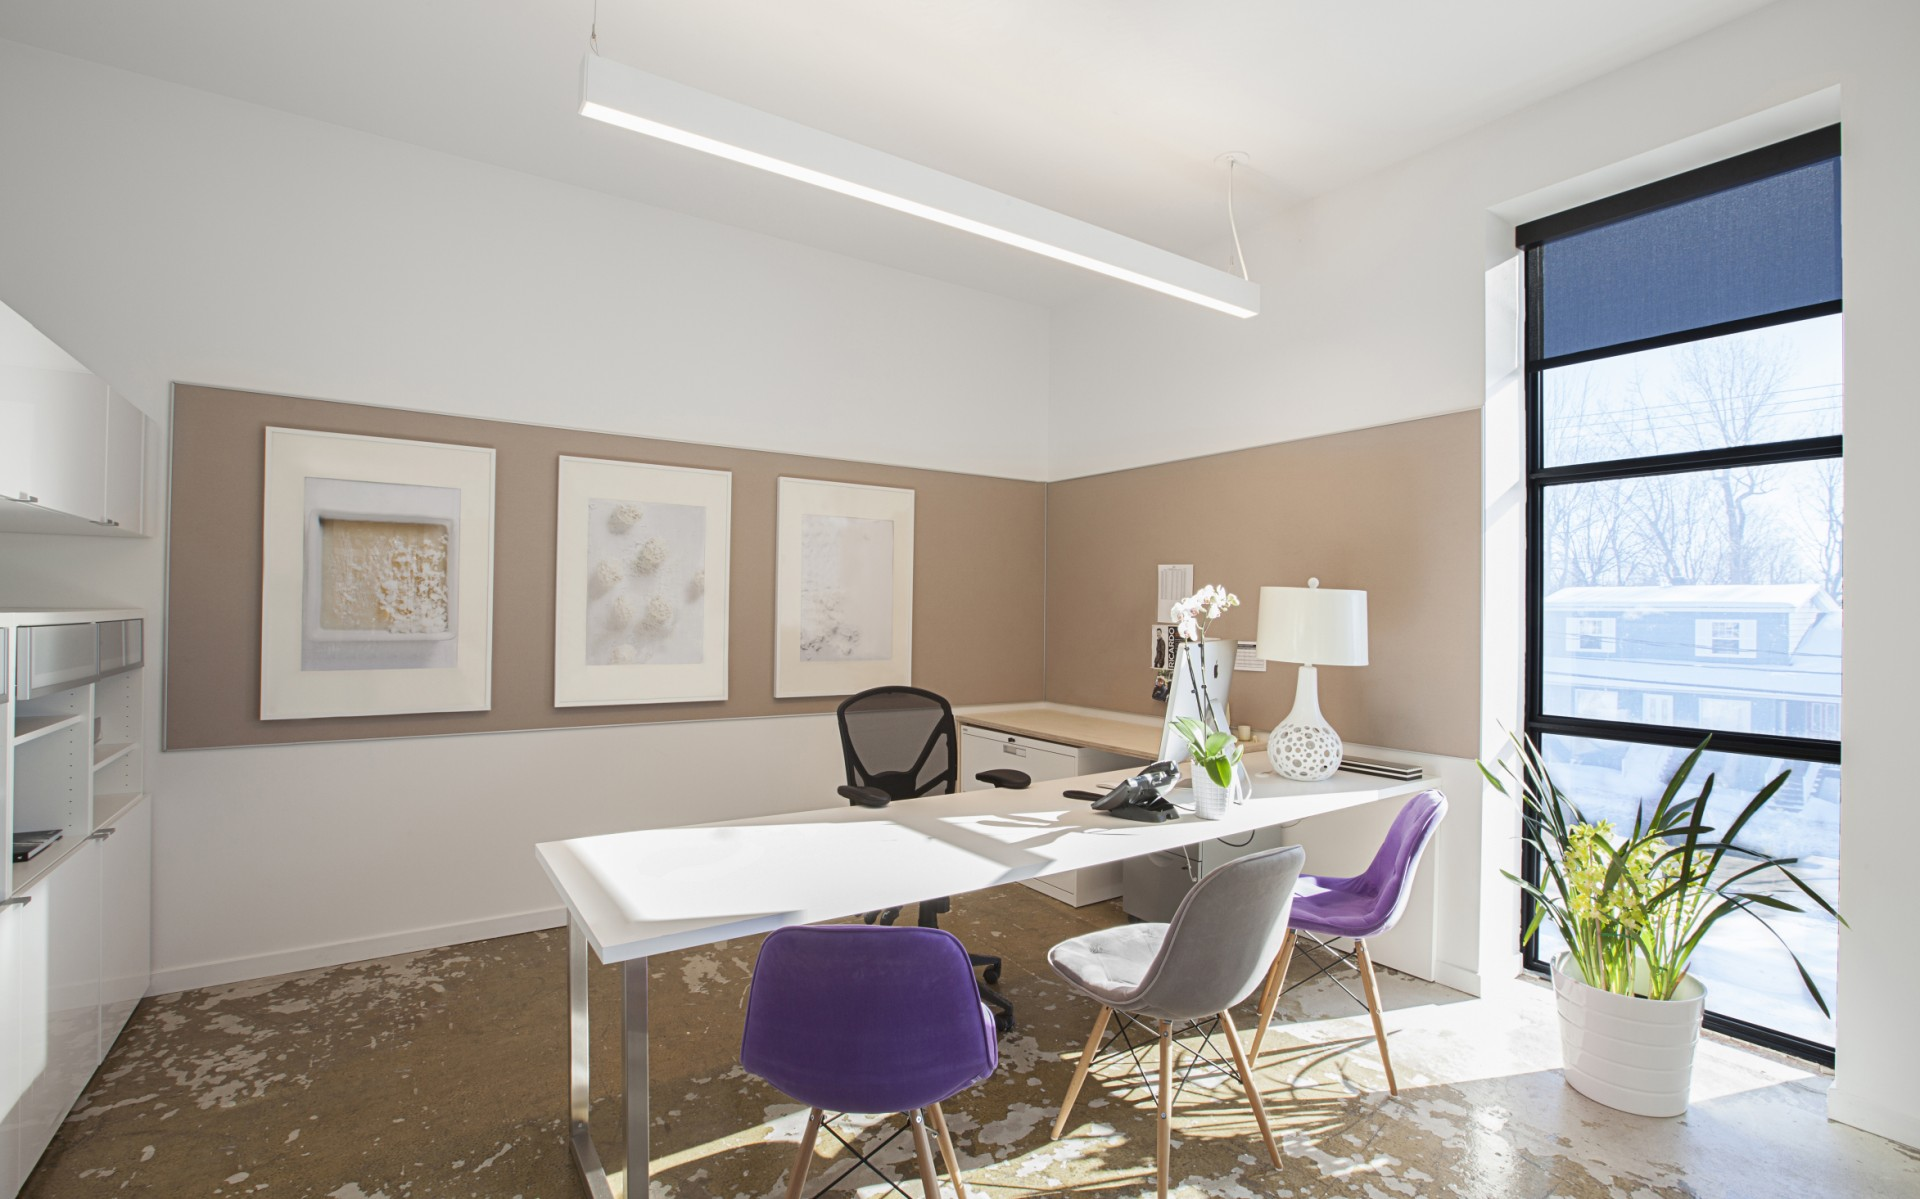 For the directors' offices, Lumenline Pendant Regressed were installed because they offer a versatile lighting for all needs, such as meetings, office work or creative time.